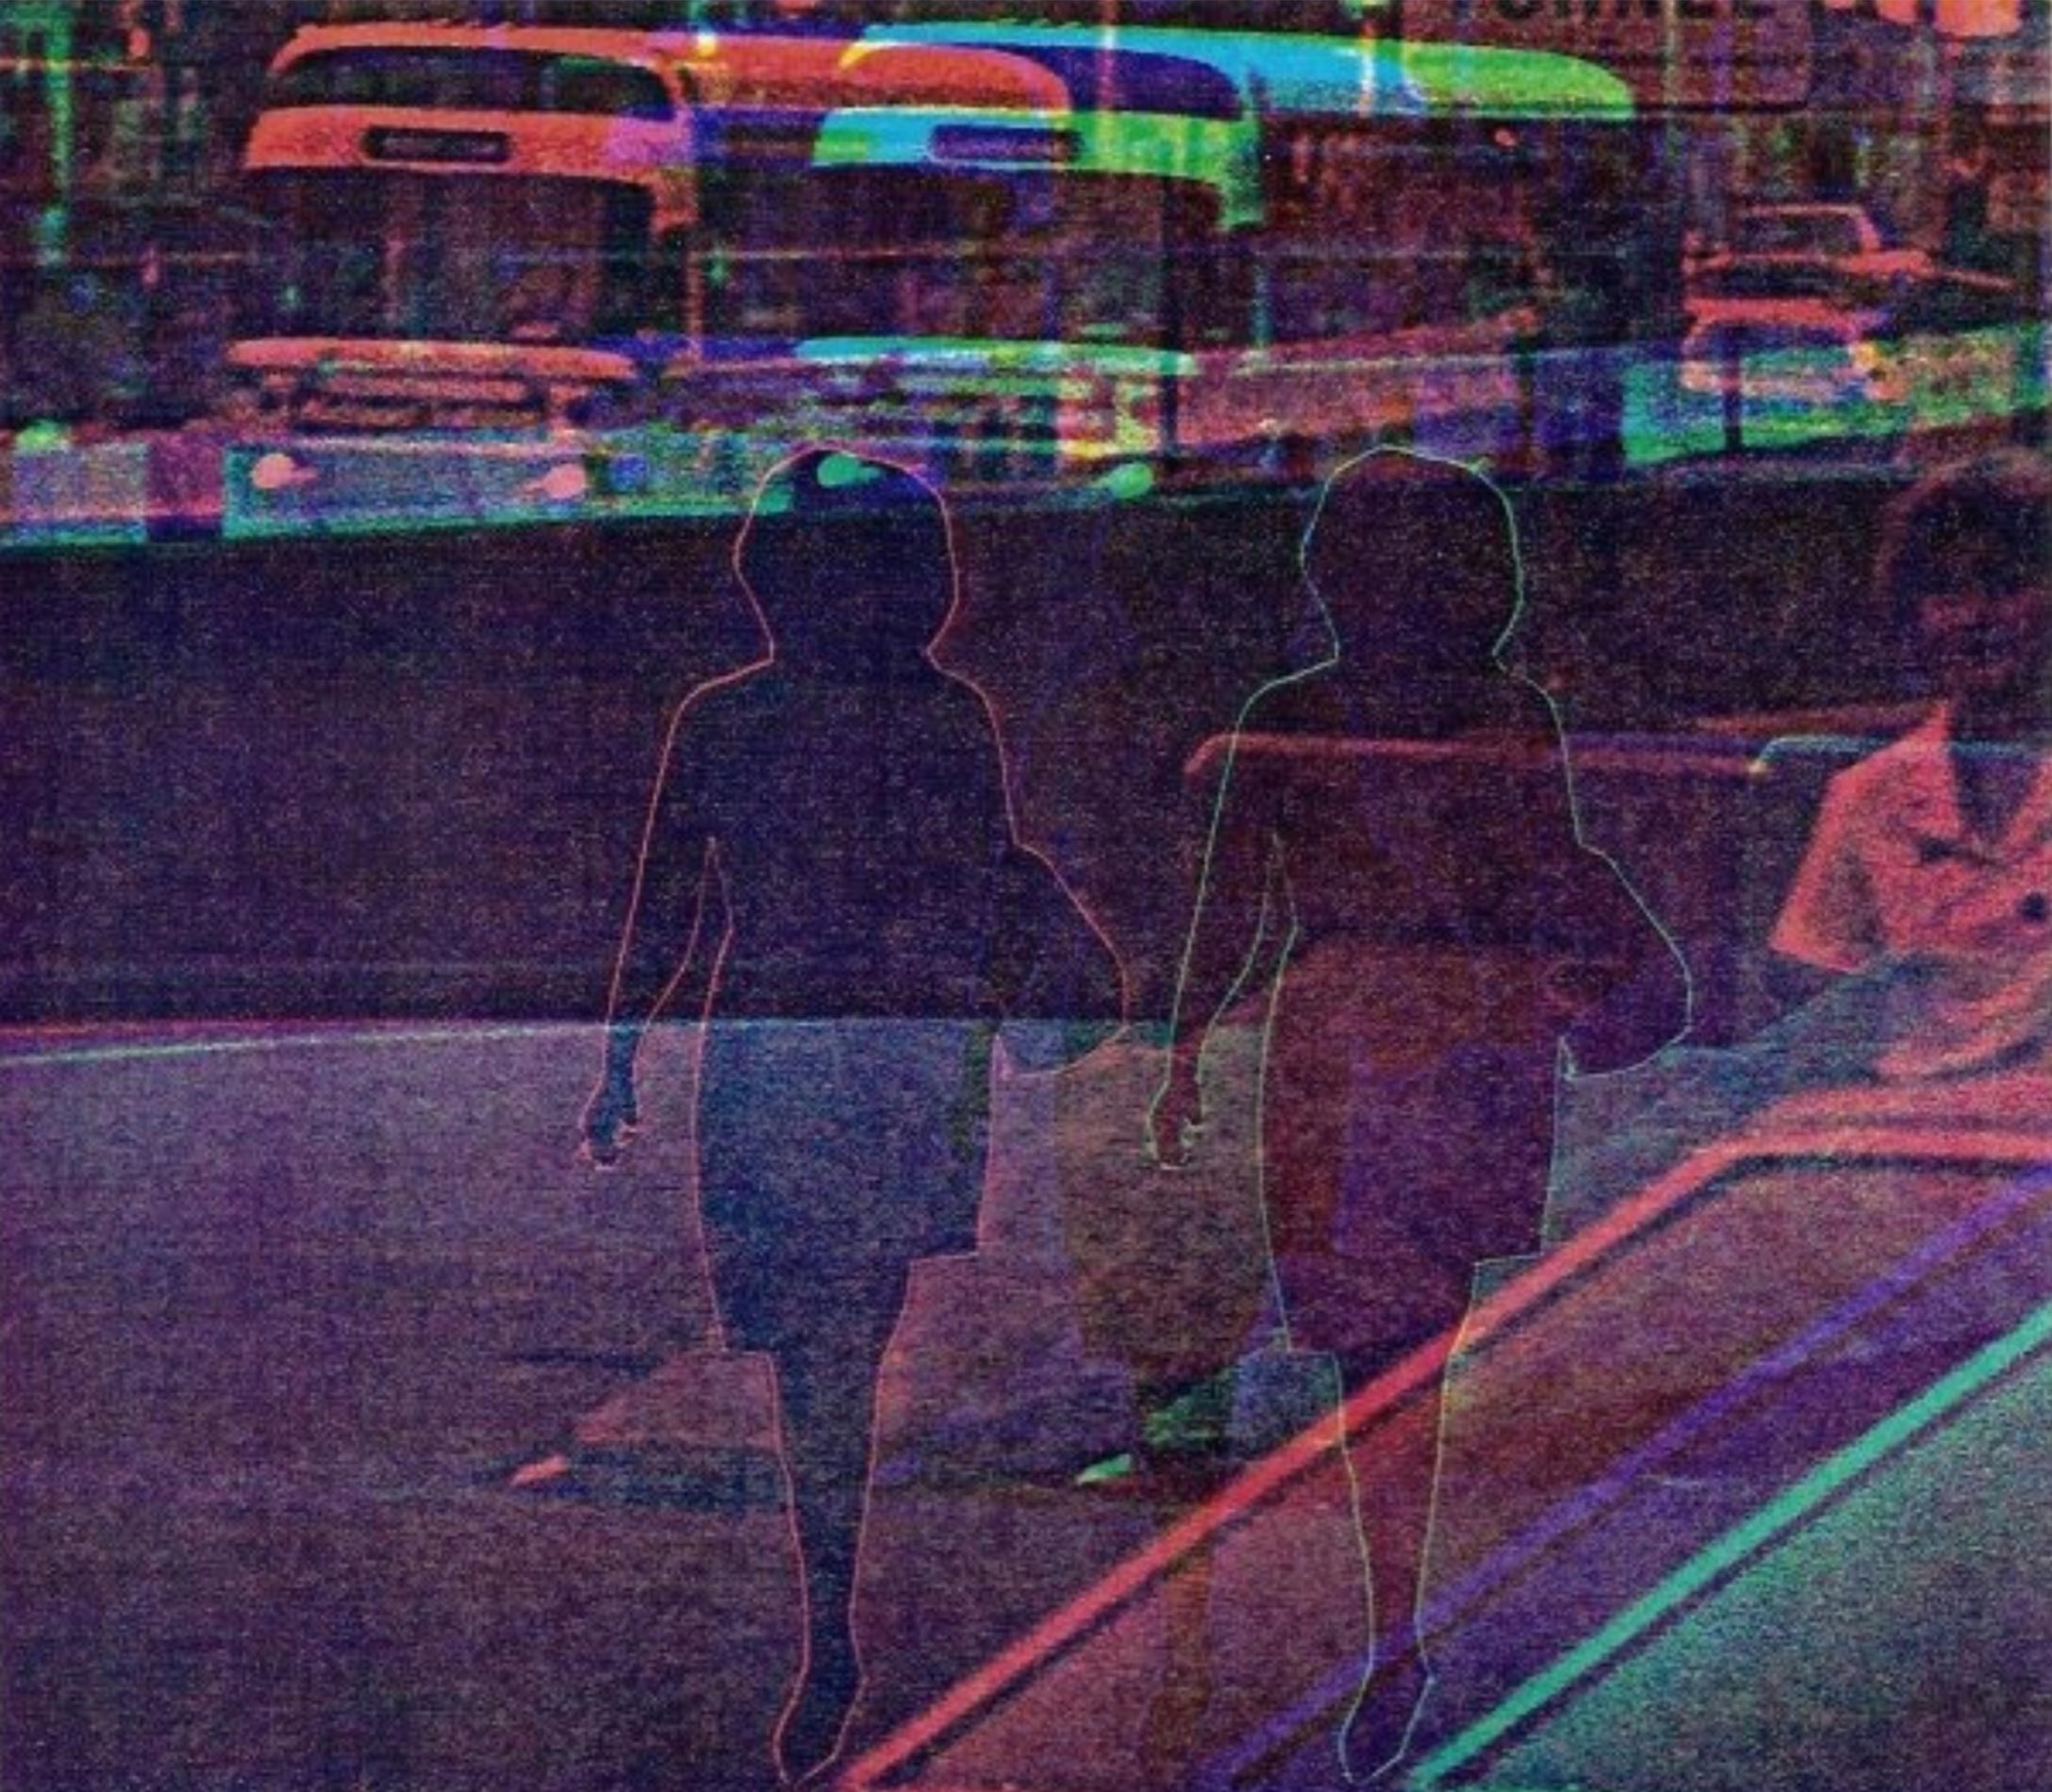 David Akiba photograph of pedestrians in a street scene with artistic color treatments